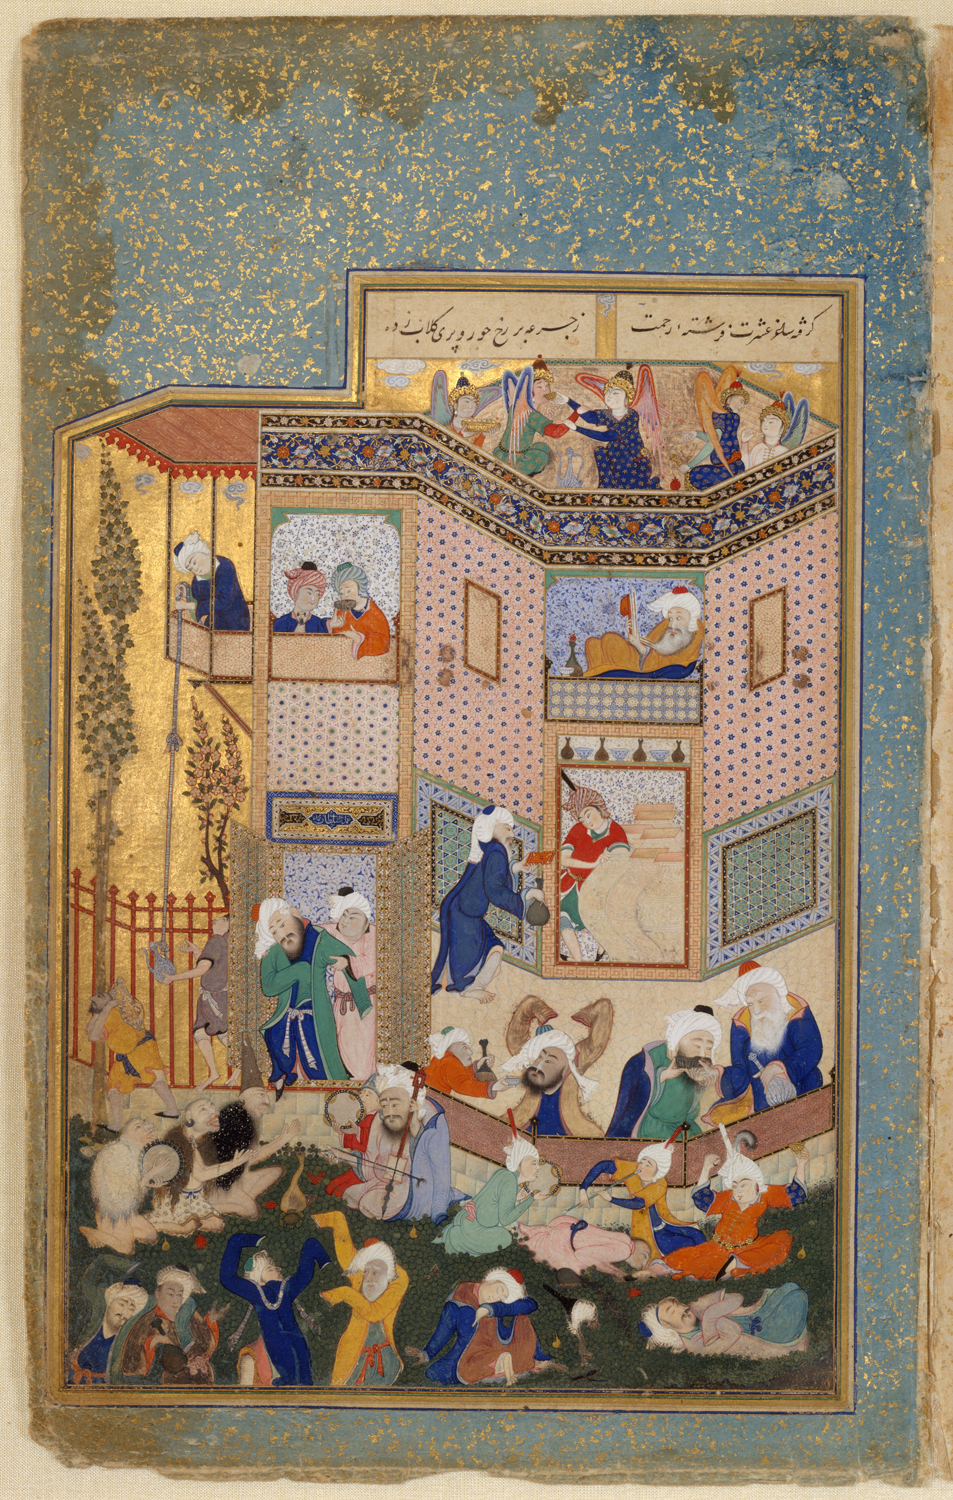 Allegory of Worldly and Otherworldly Drunkenness, Folio from the Divan of Hafiz